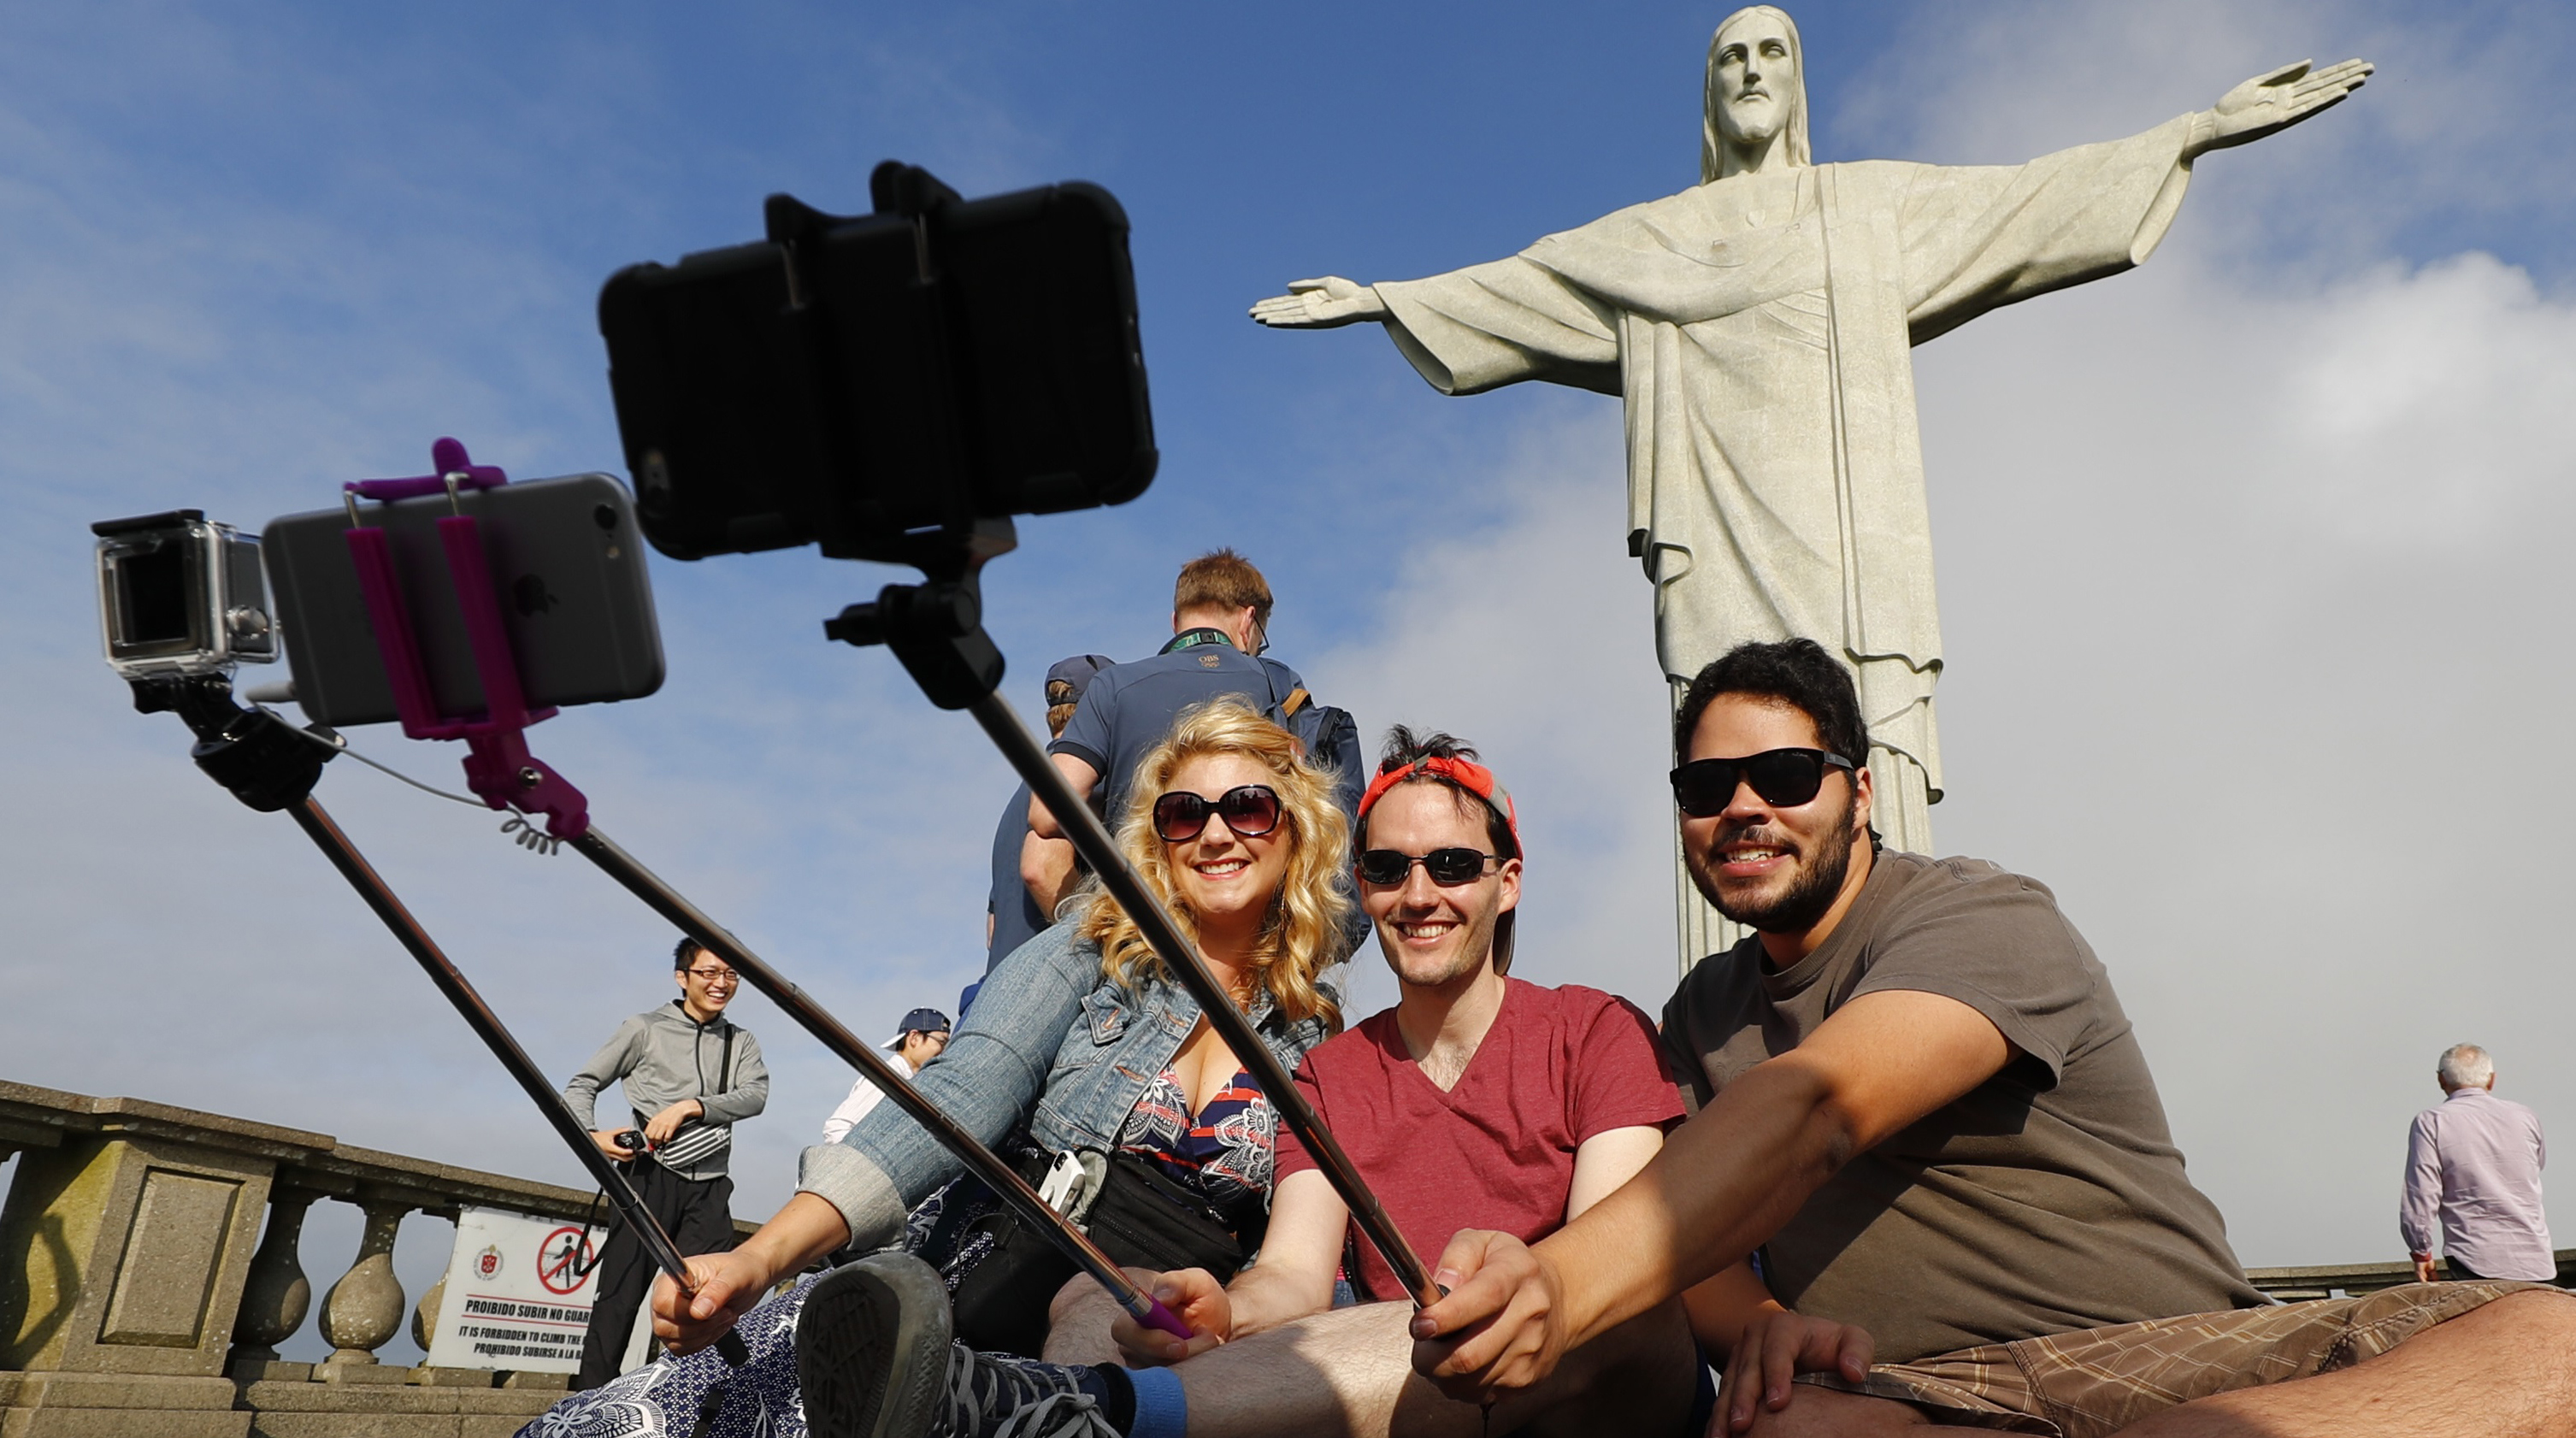 2016 Rio Olympics - Christ the Redeemer - 30/07/2016. Tourists pose for selfies in front of Christ the Redeemer.